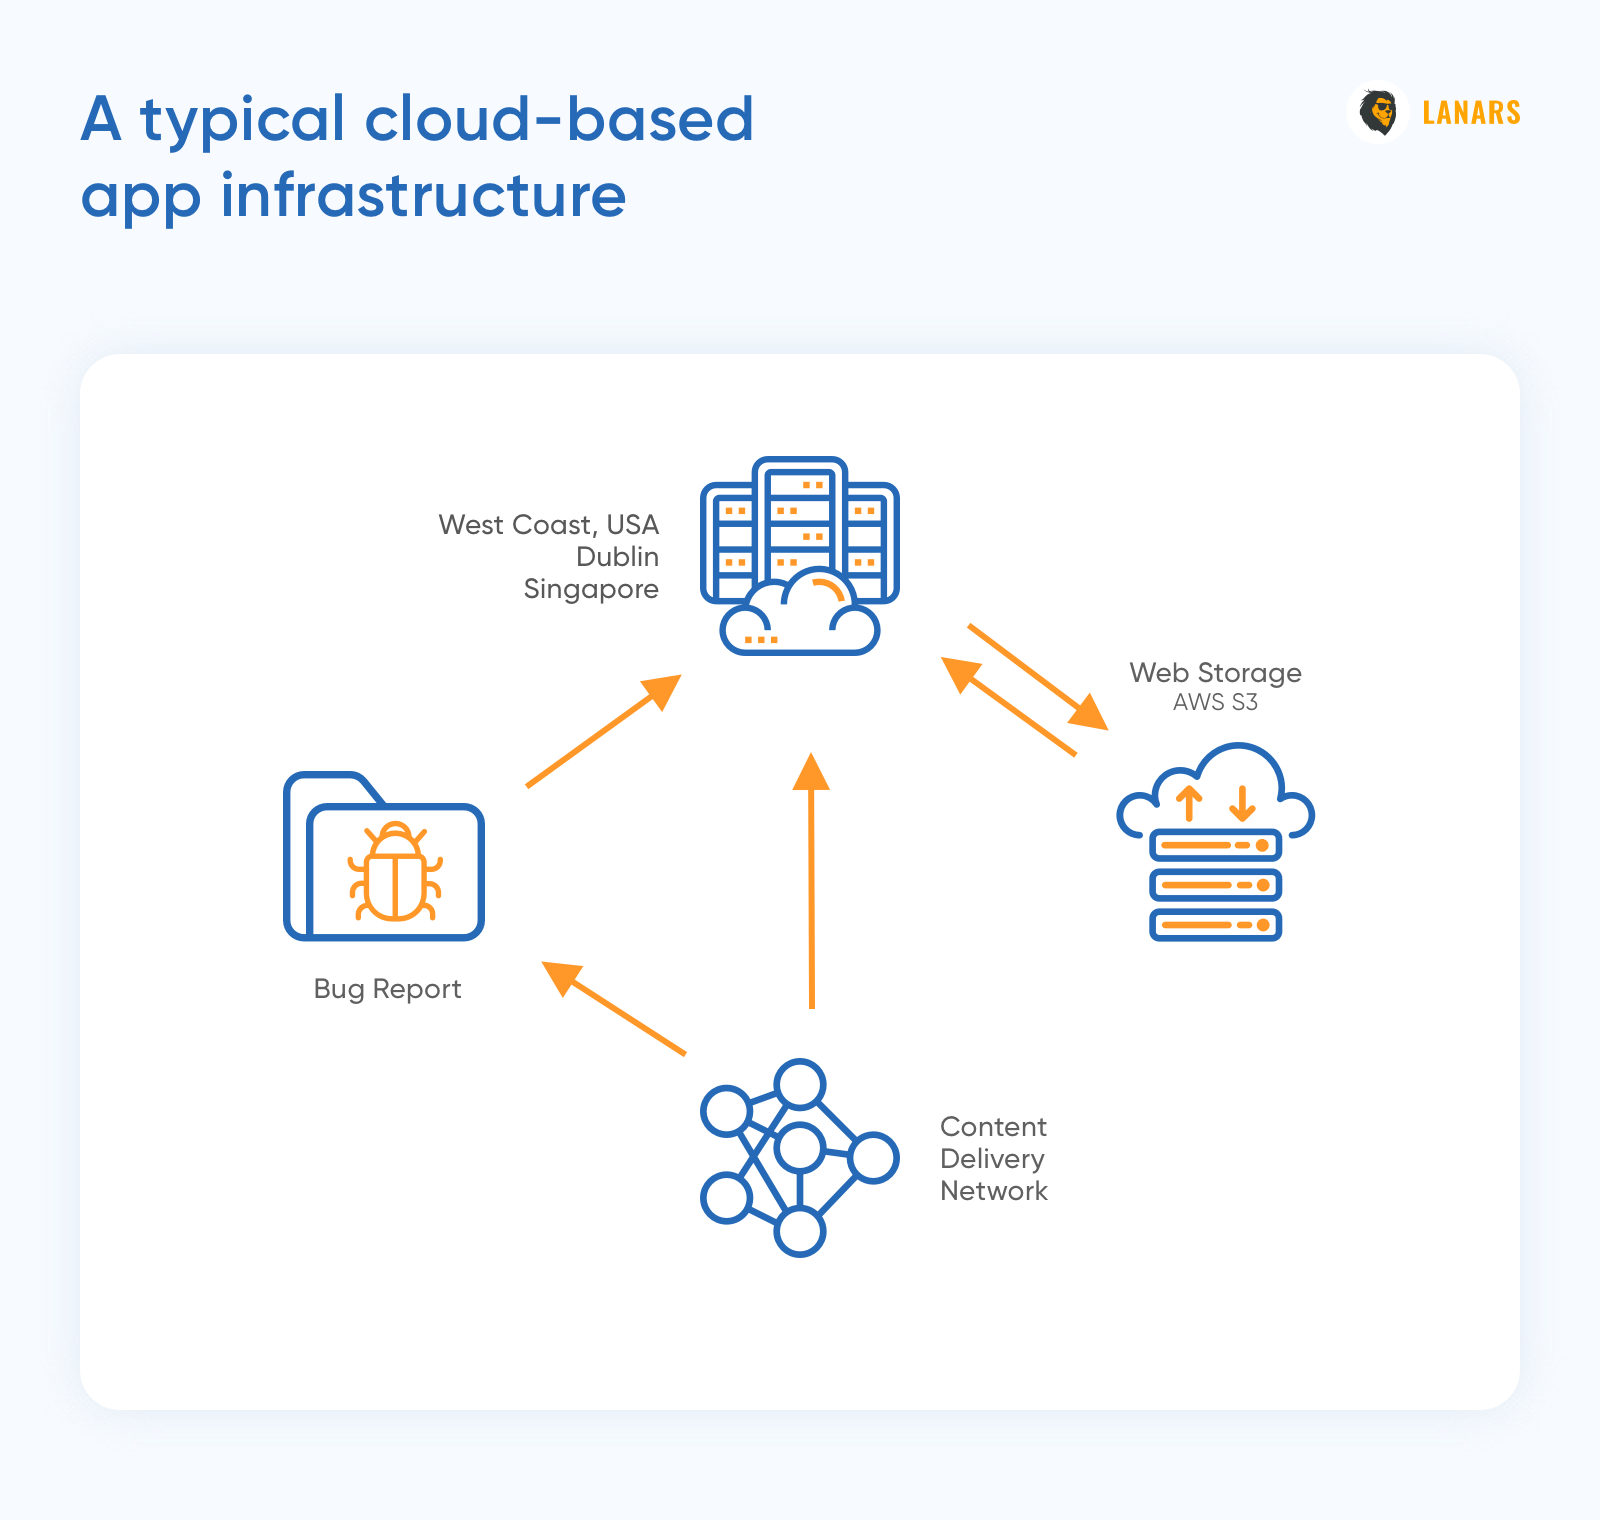 A typical cloud-based app infrastructure